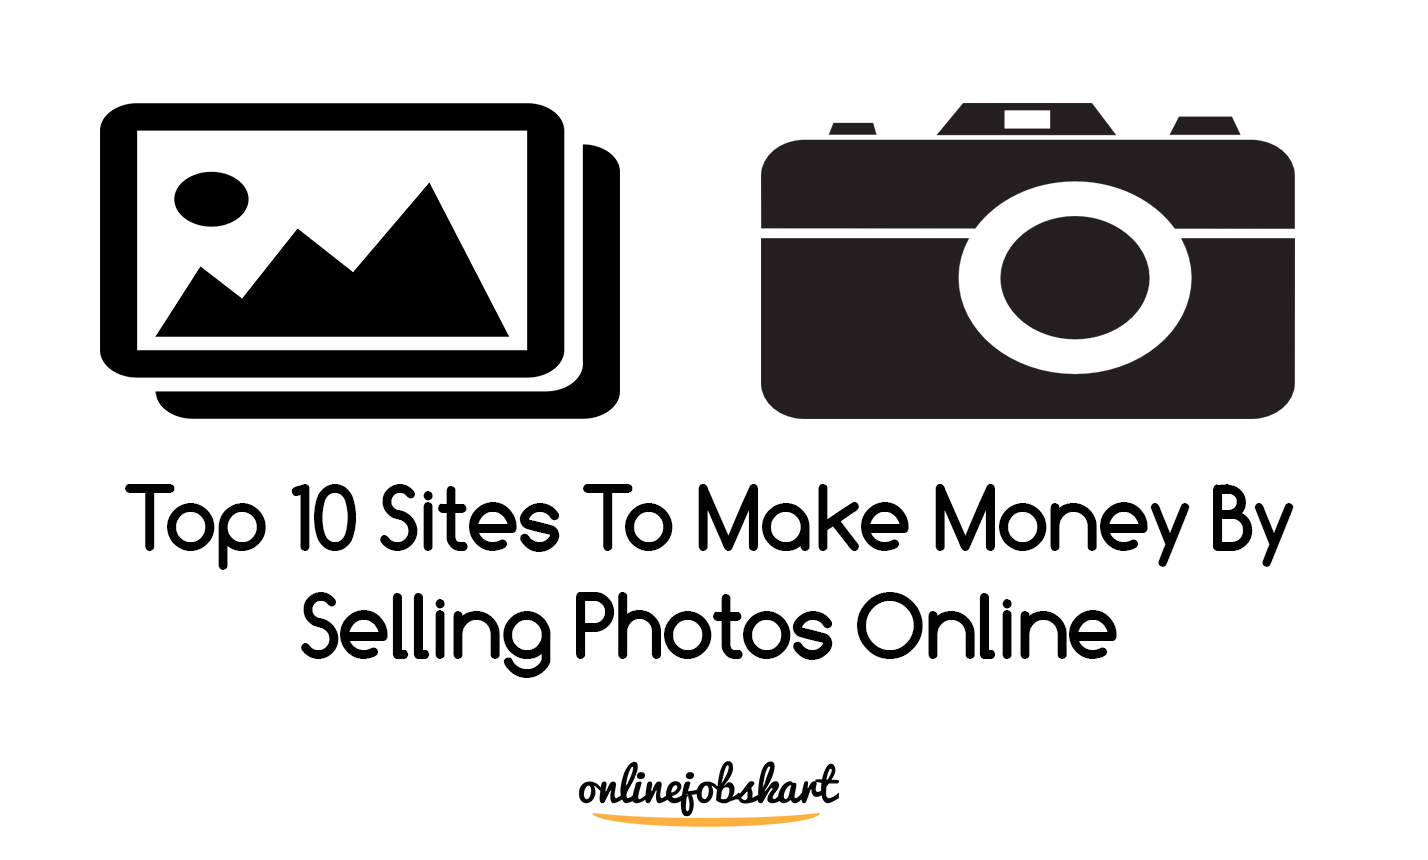 Top 10 Sites To Make Money By Selling Photos Online